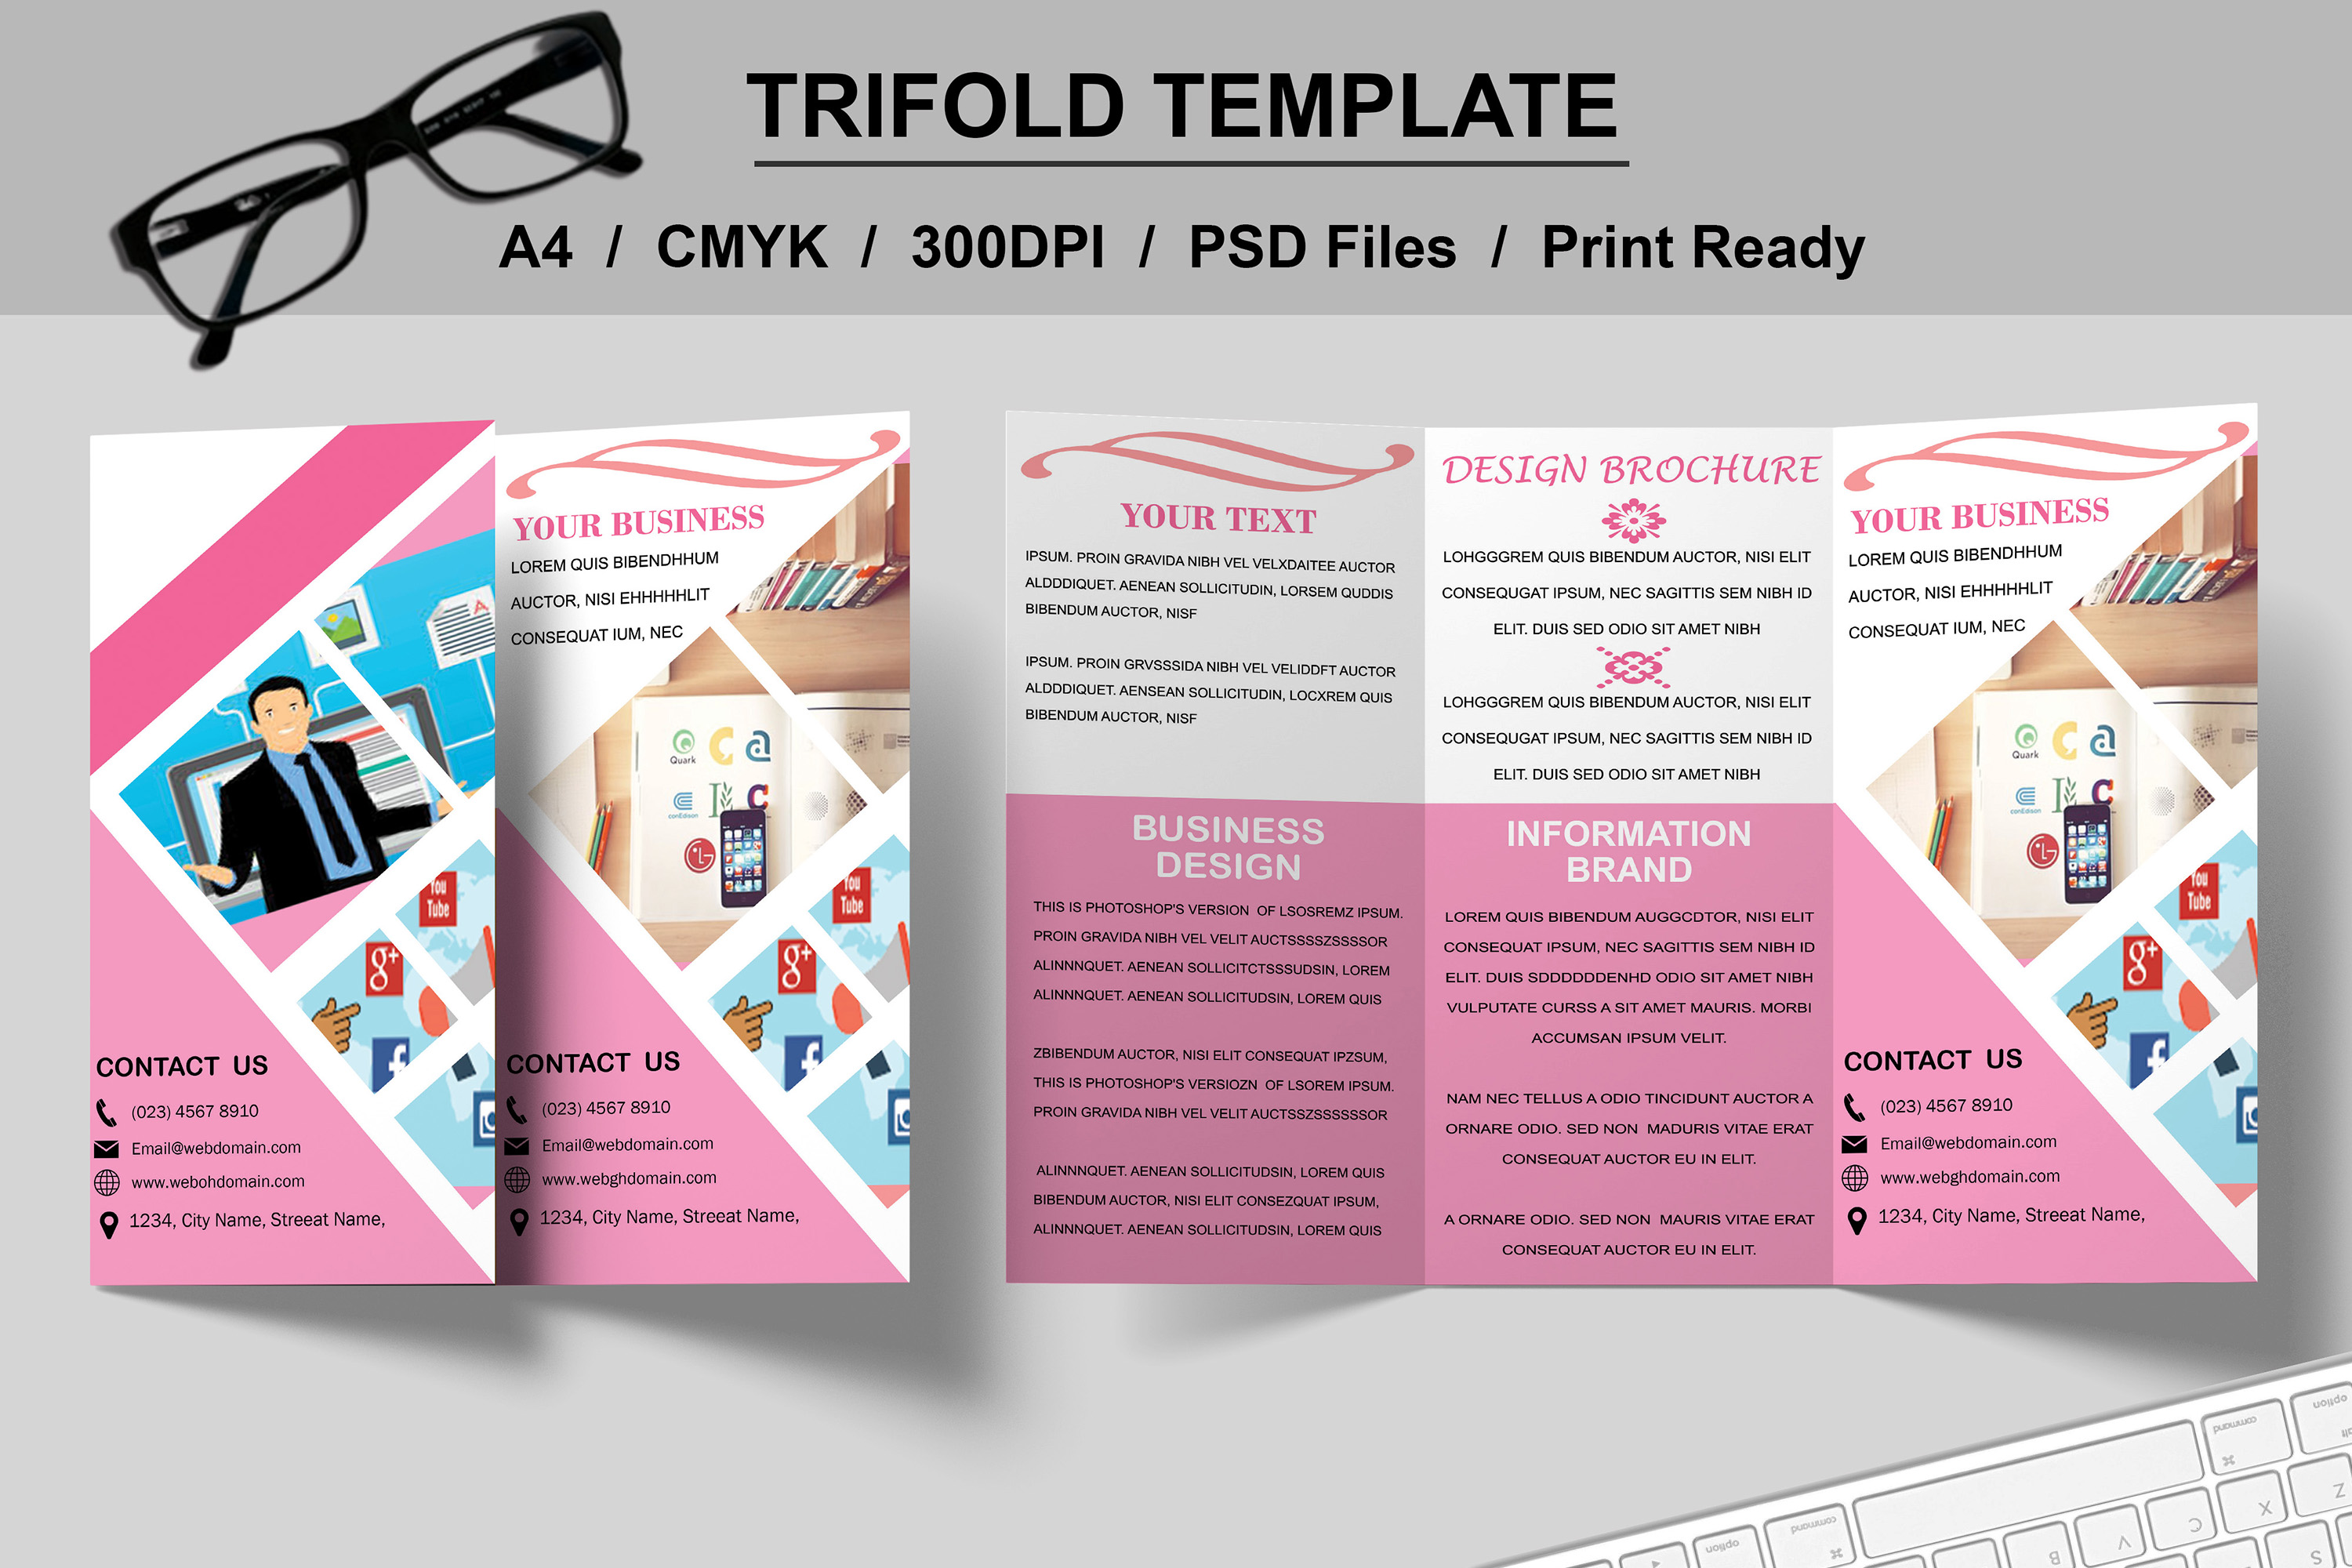 Trifold Brochure Template example image 7